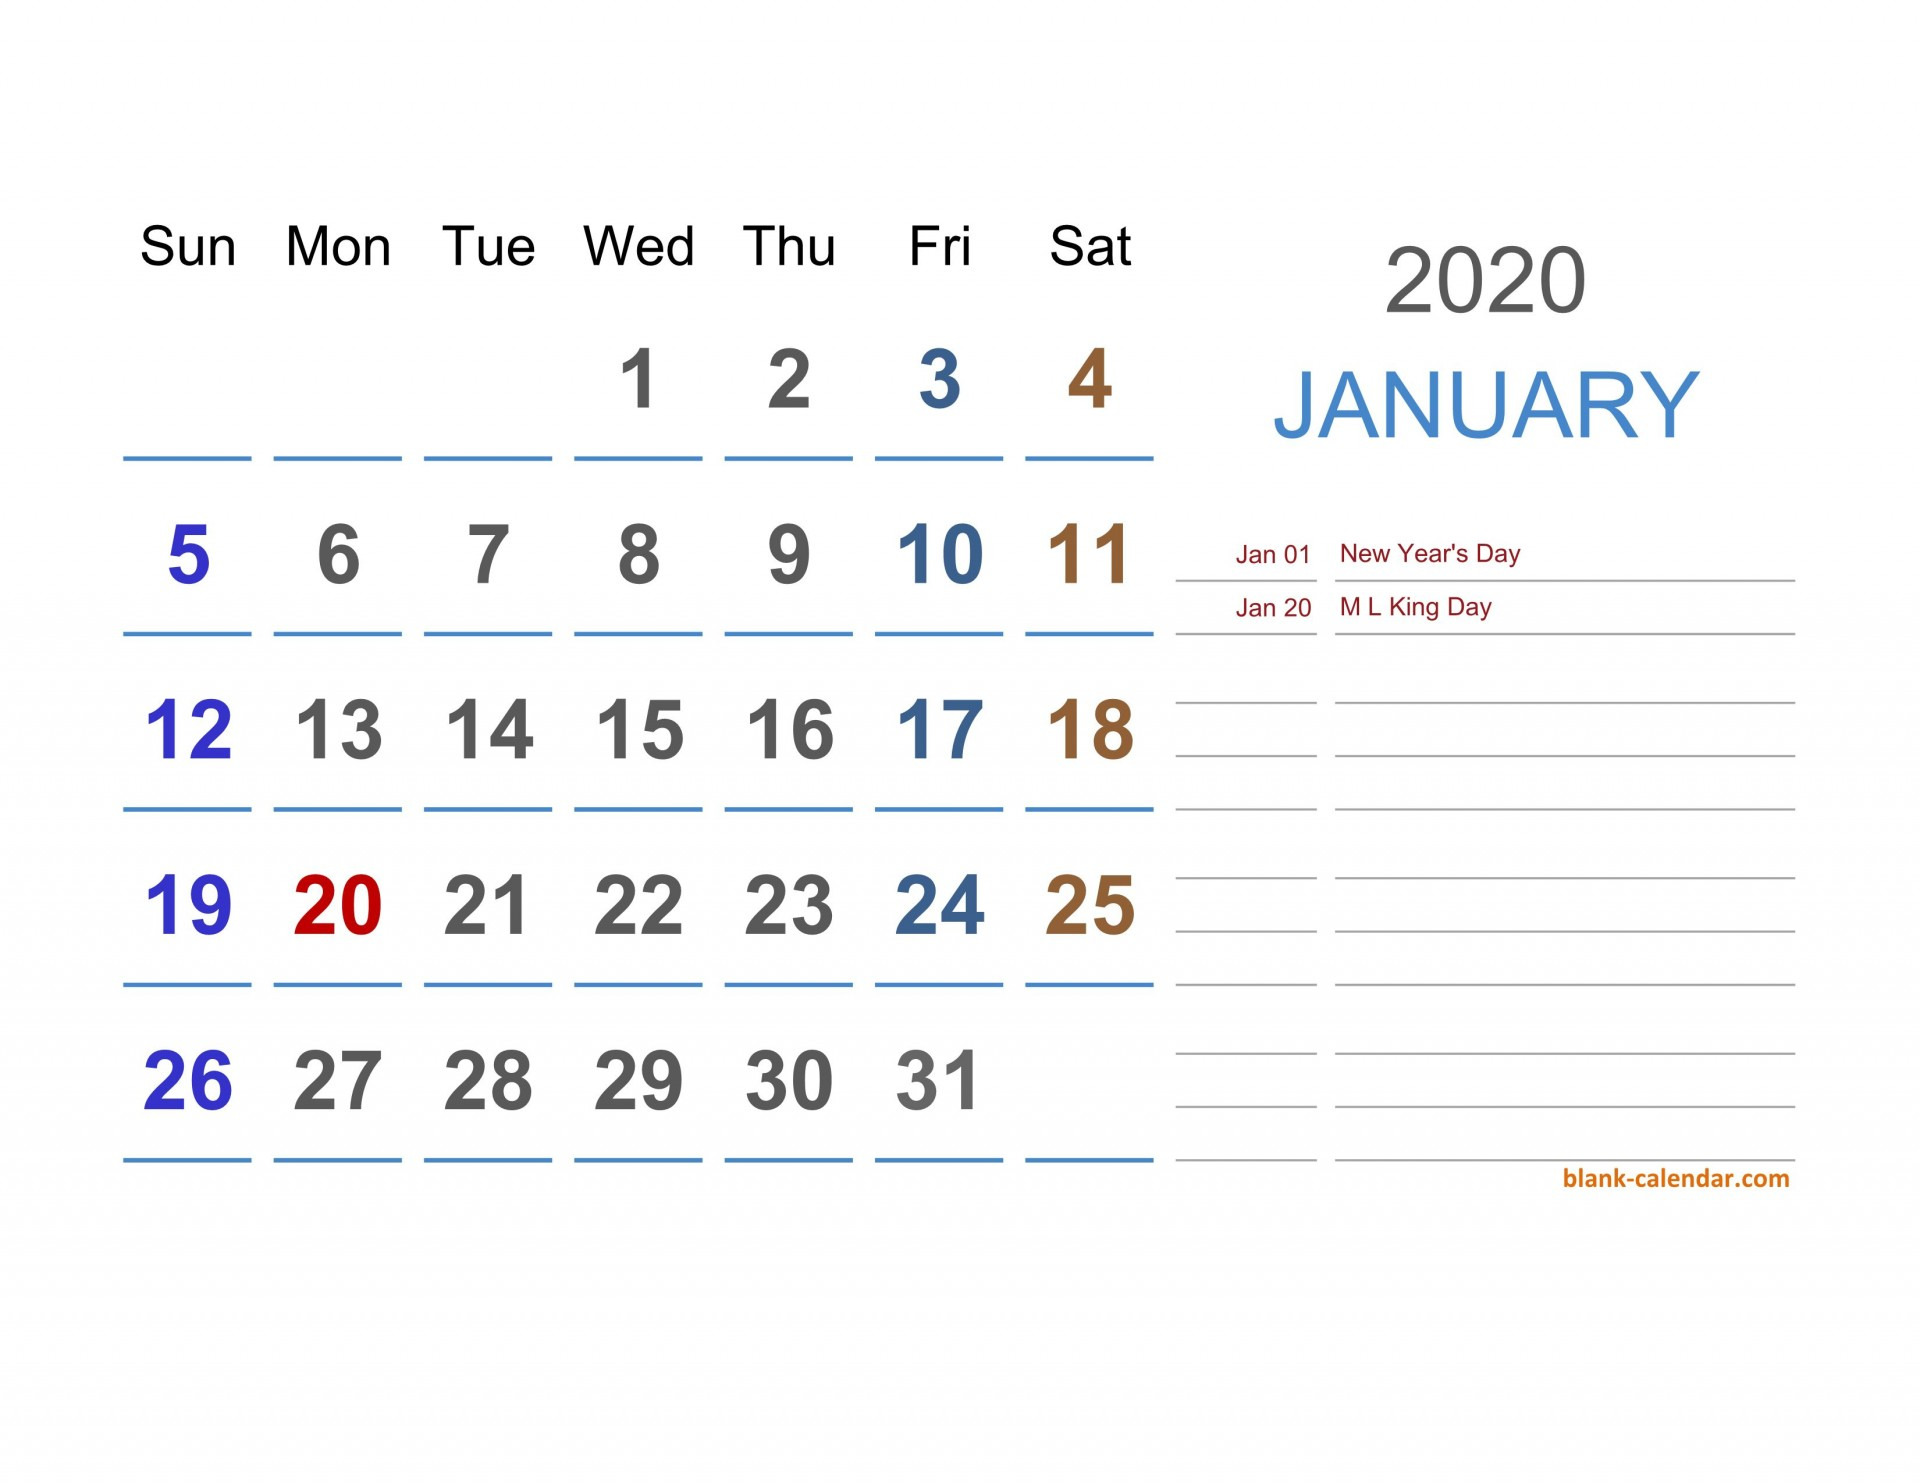 001 Fascinating Microsoft Calendar Template 2020 High Resolution  Publisher Office Free1920